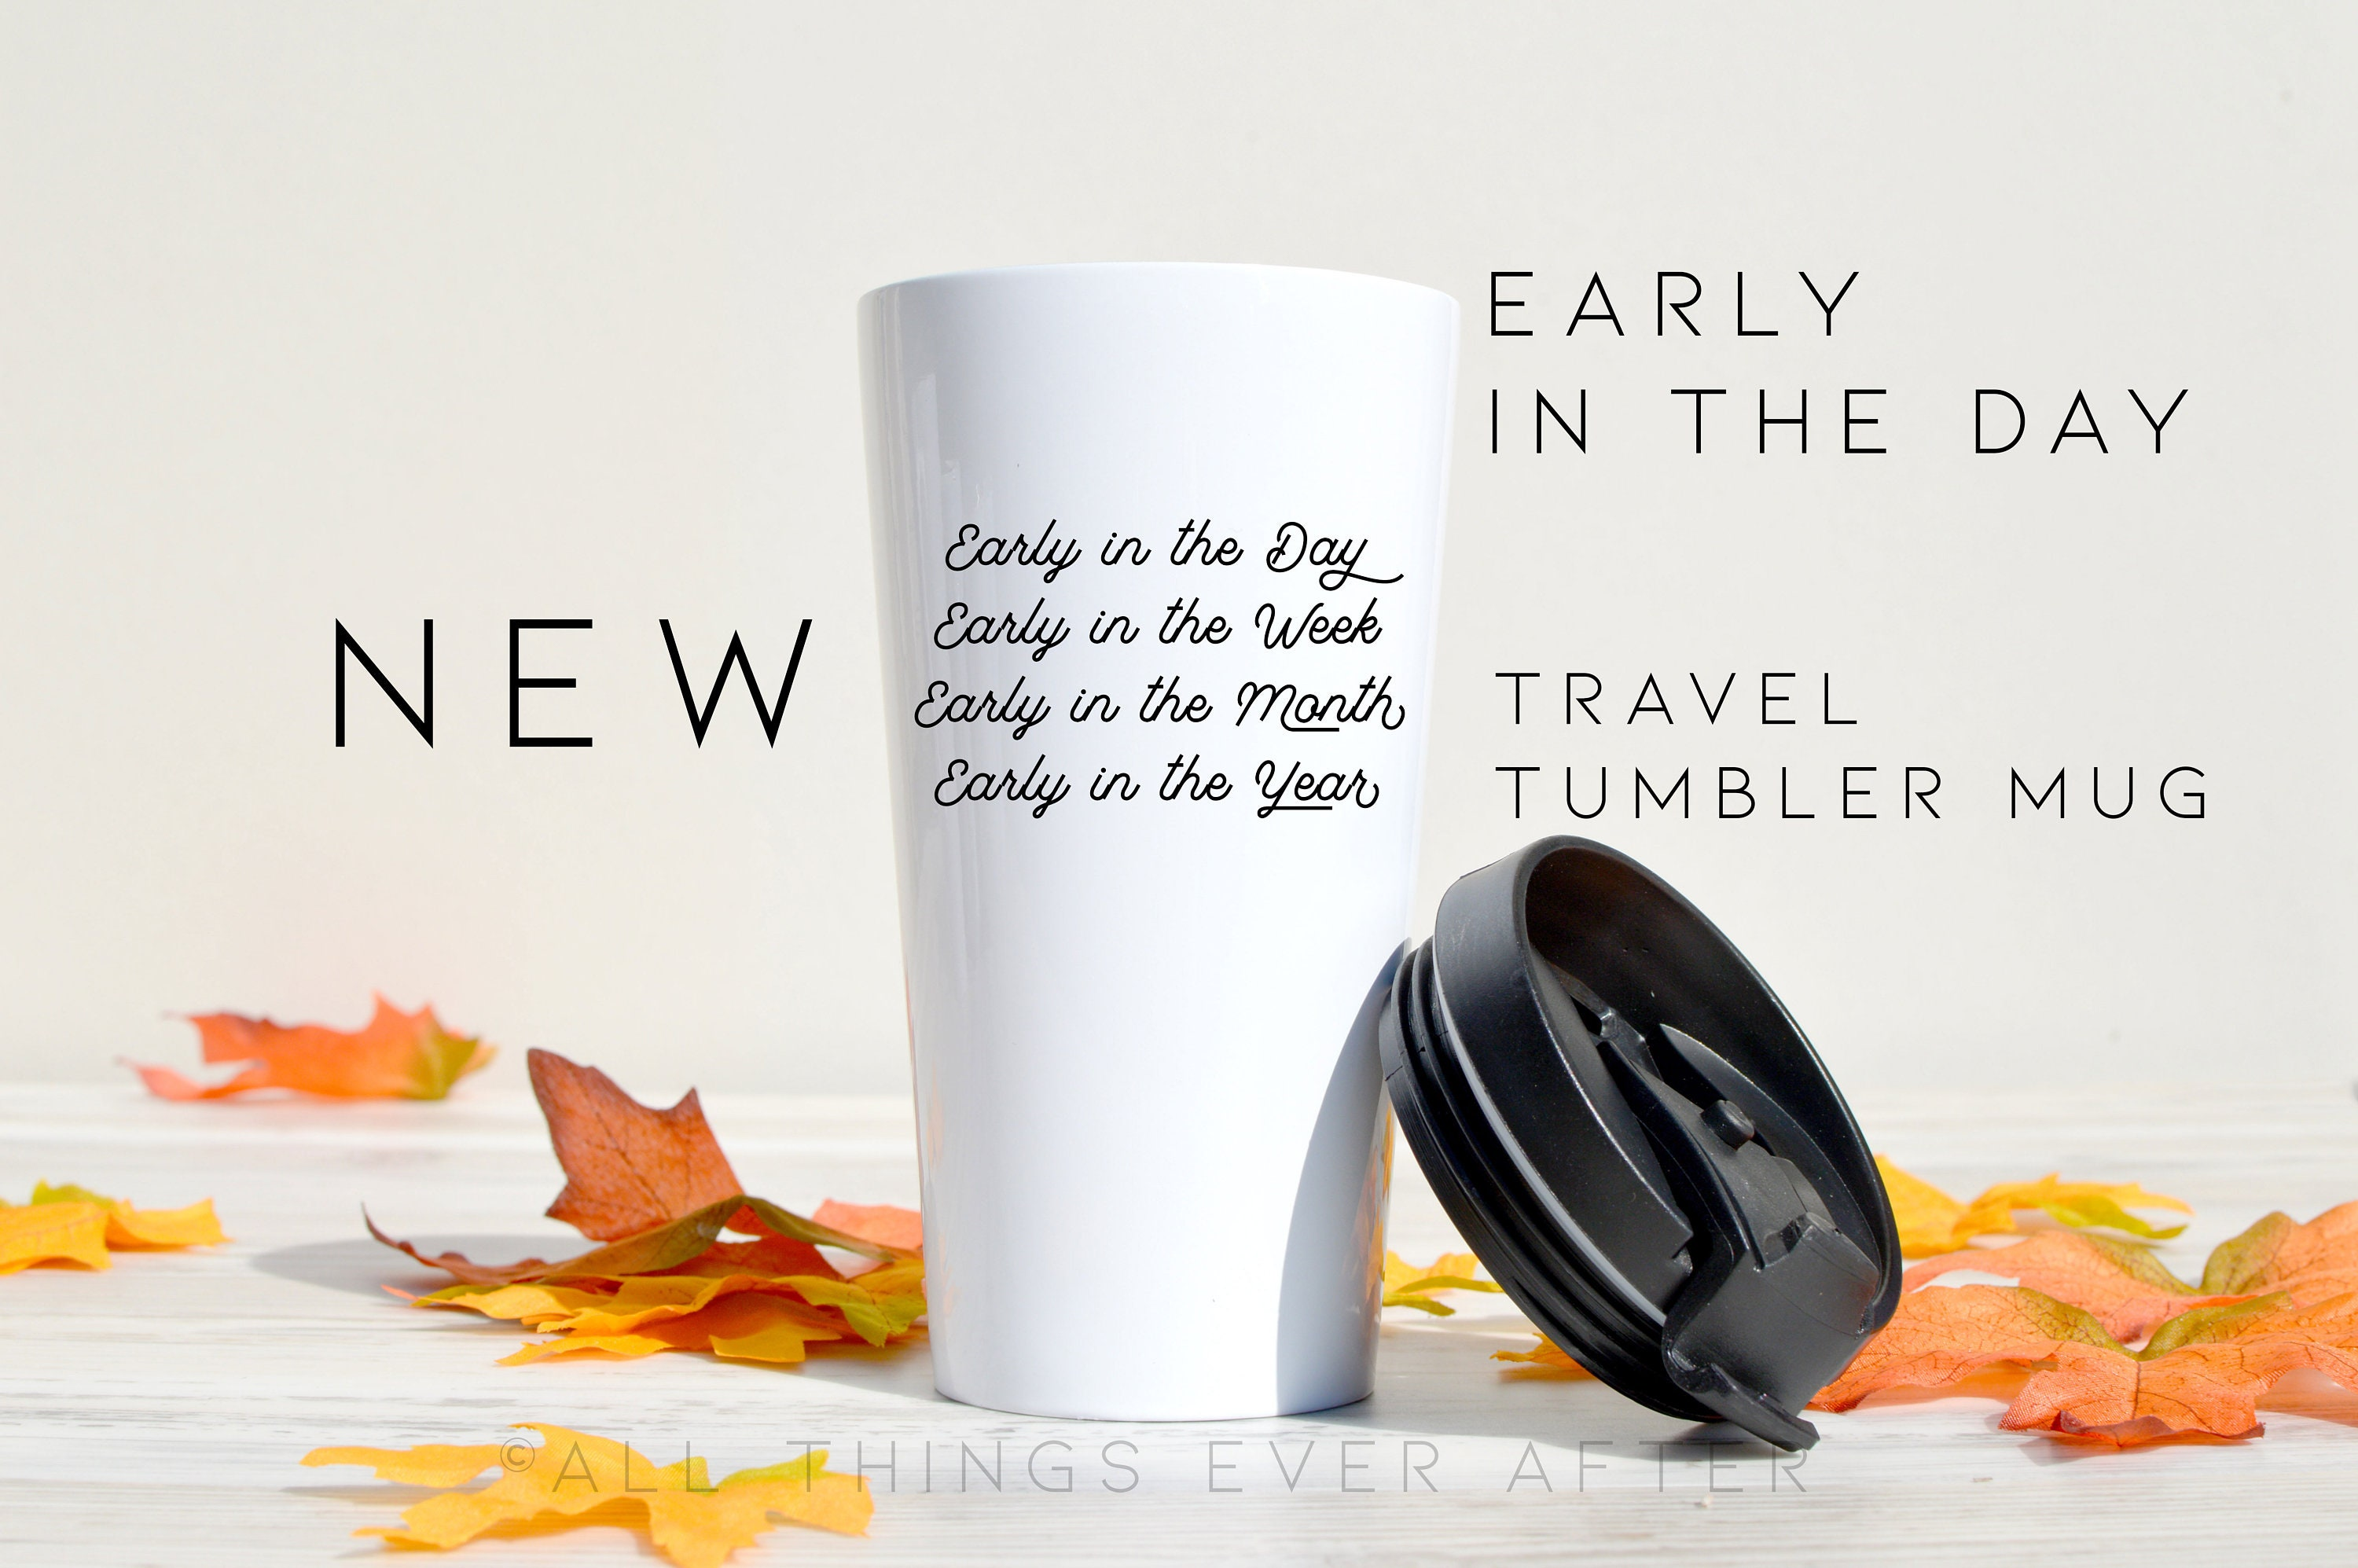 New Pioneer Travel >> Early In The Day Jw Pioneer Travel Tumbler Mug Jw Gift Etsy